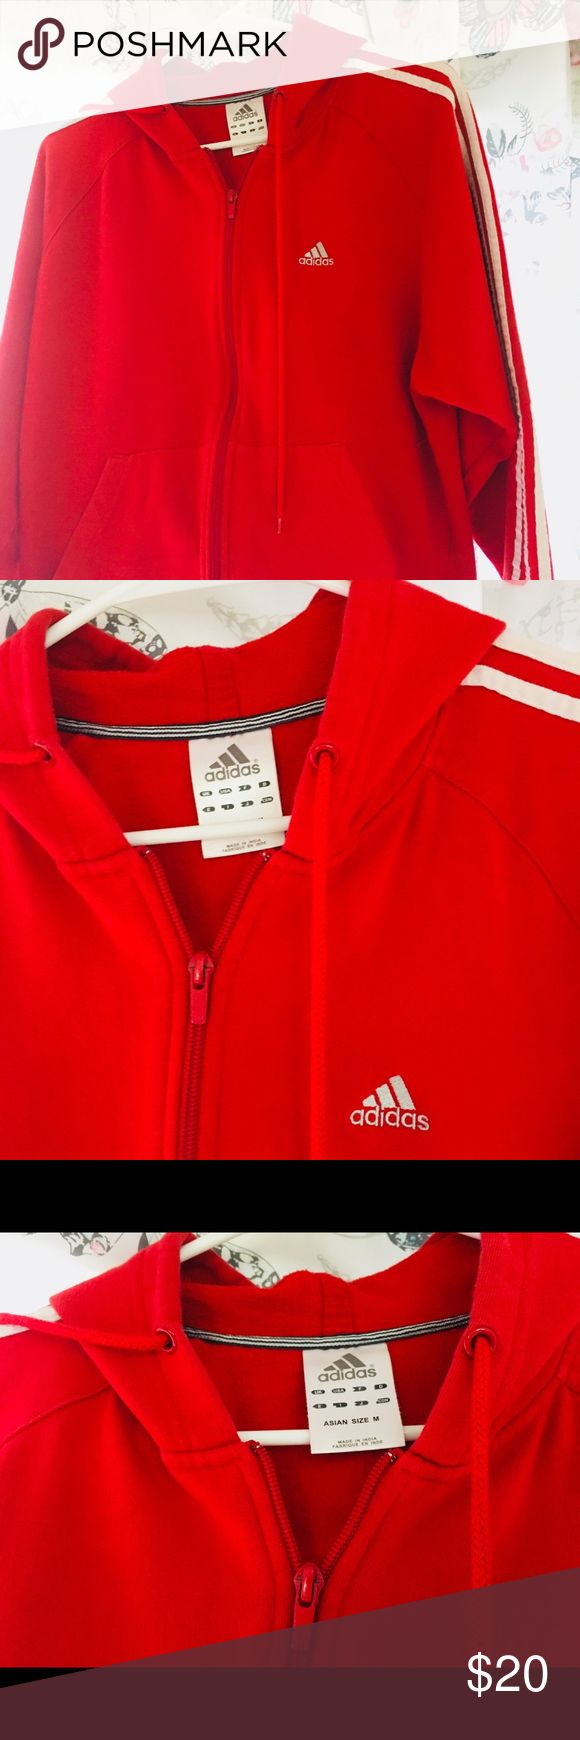 Valentines Red-Adidas hoodie Size M Adidas Red color Size M, very soft cotton, perfect for this season adidas Sweaters Zip Up